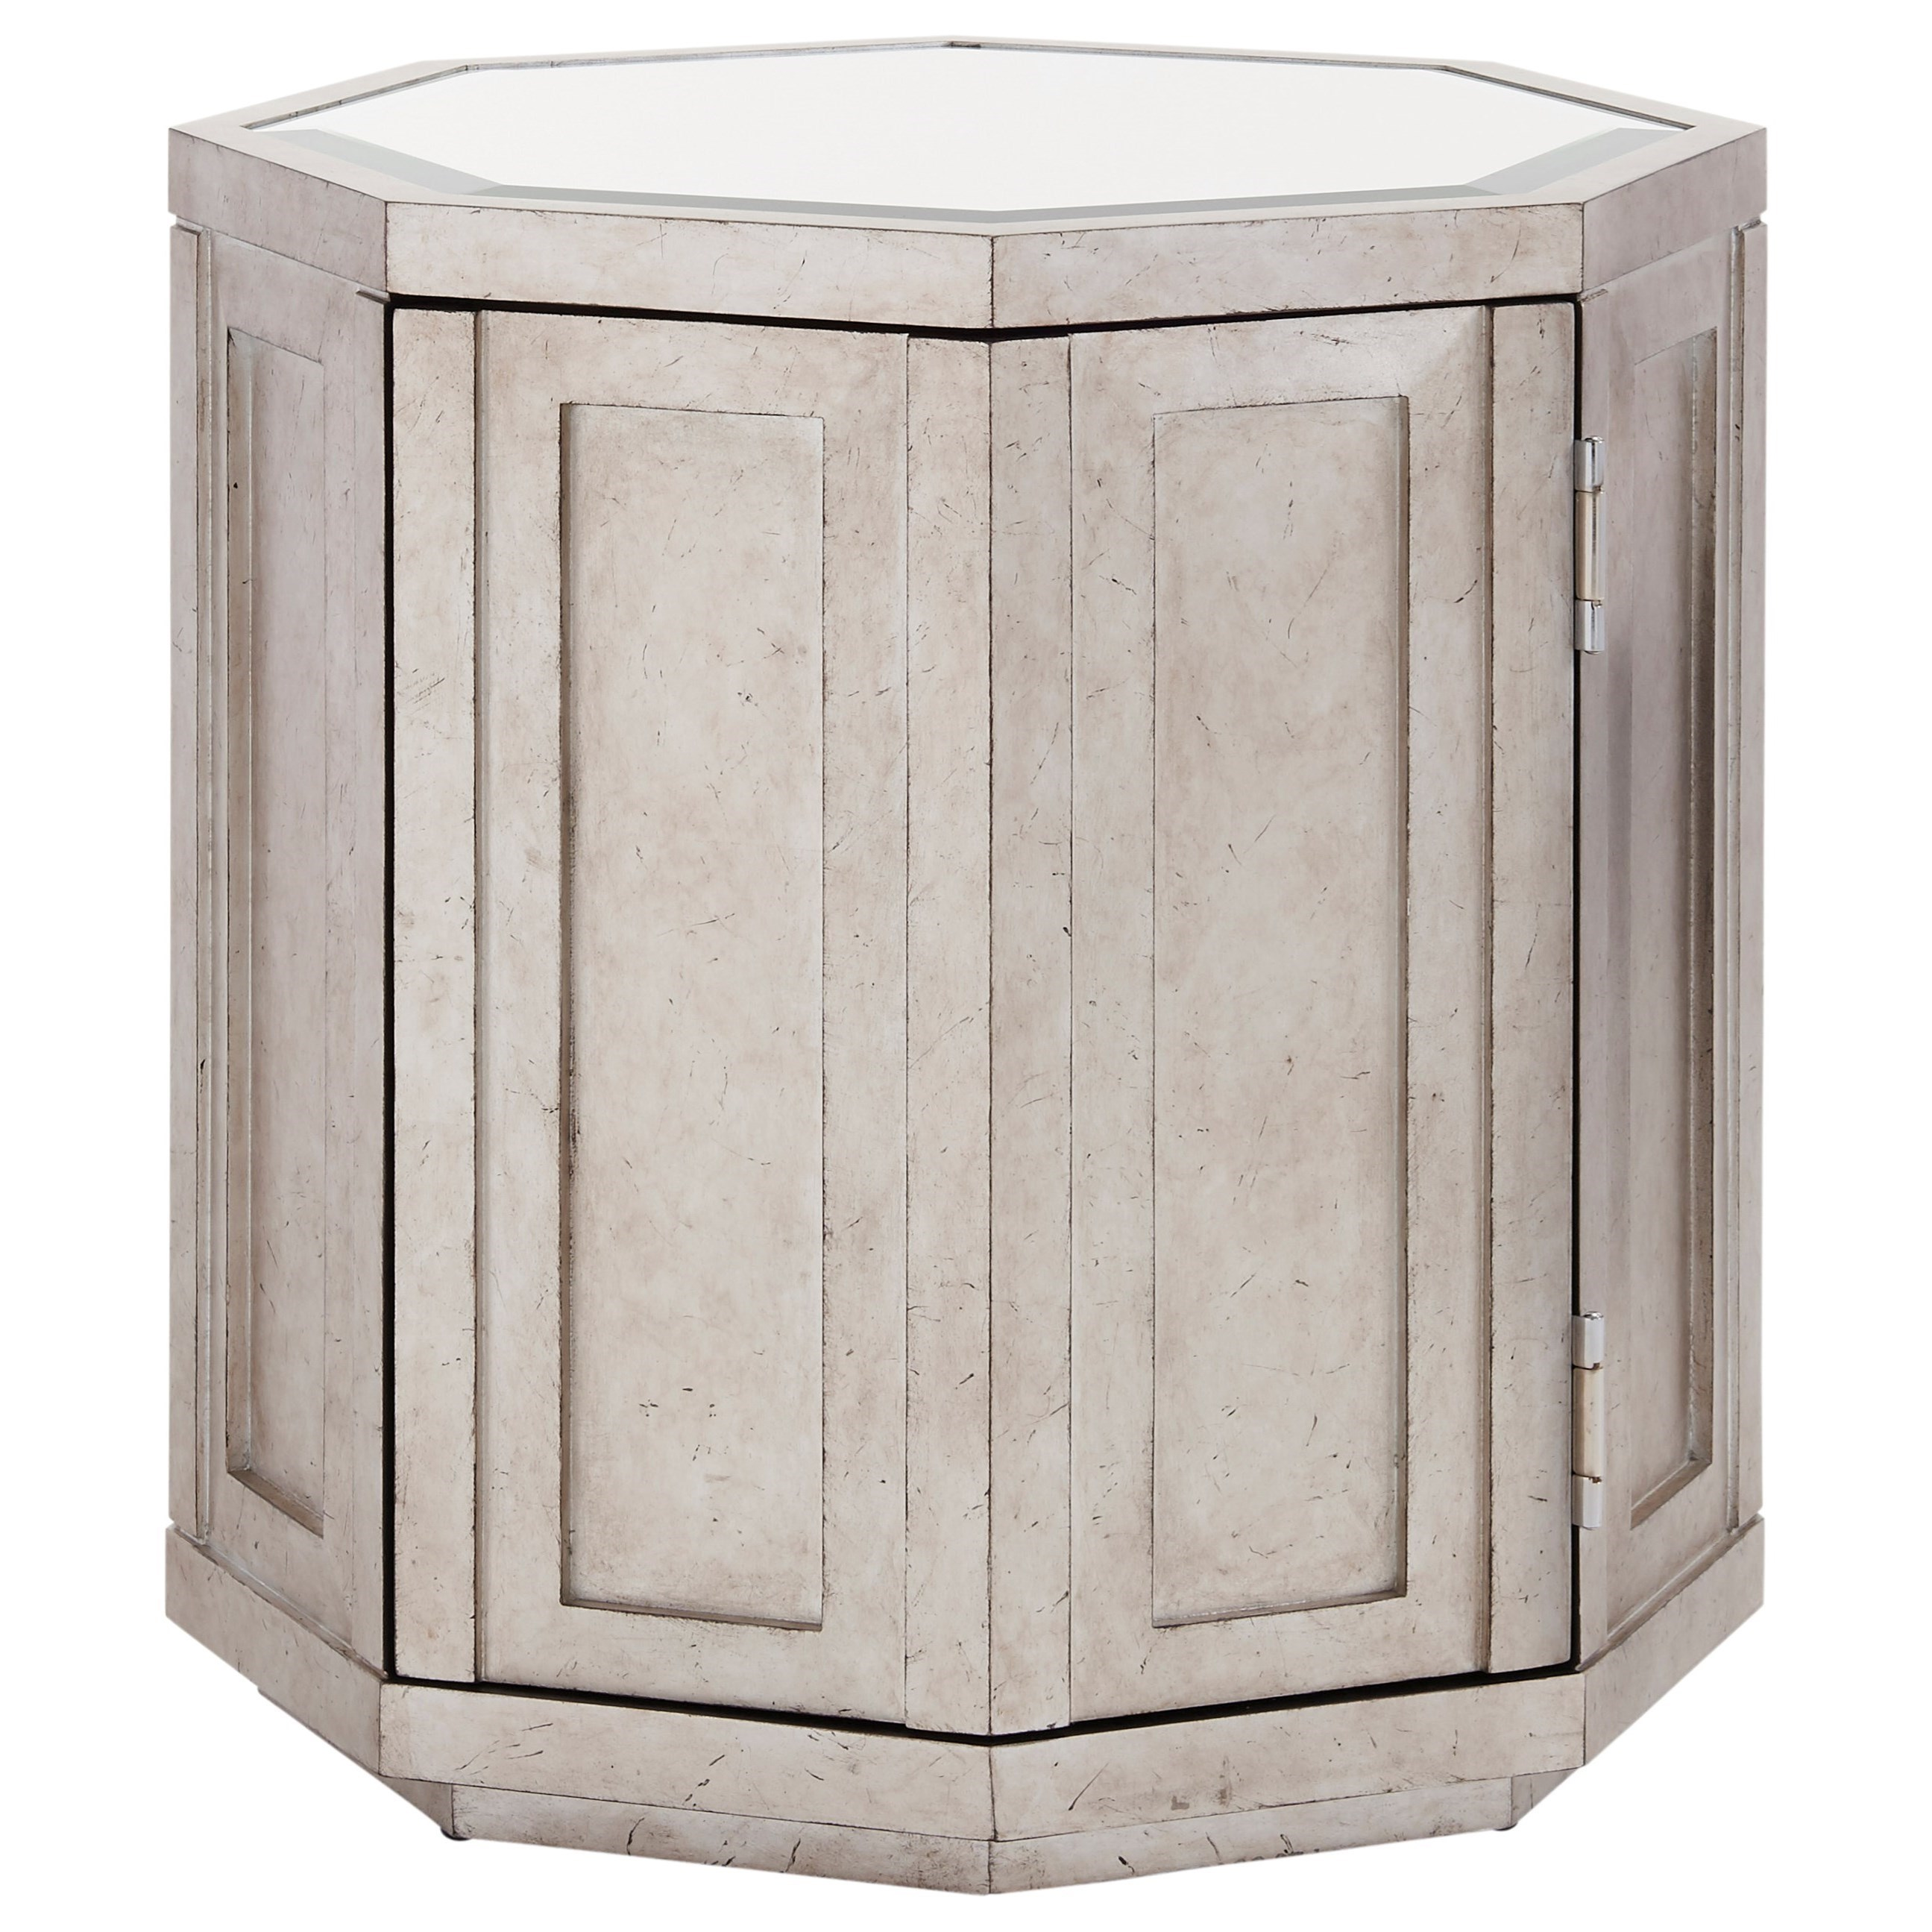 Rochelle Octagonal Storage Table with Silver Leaf and Mirrored Top